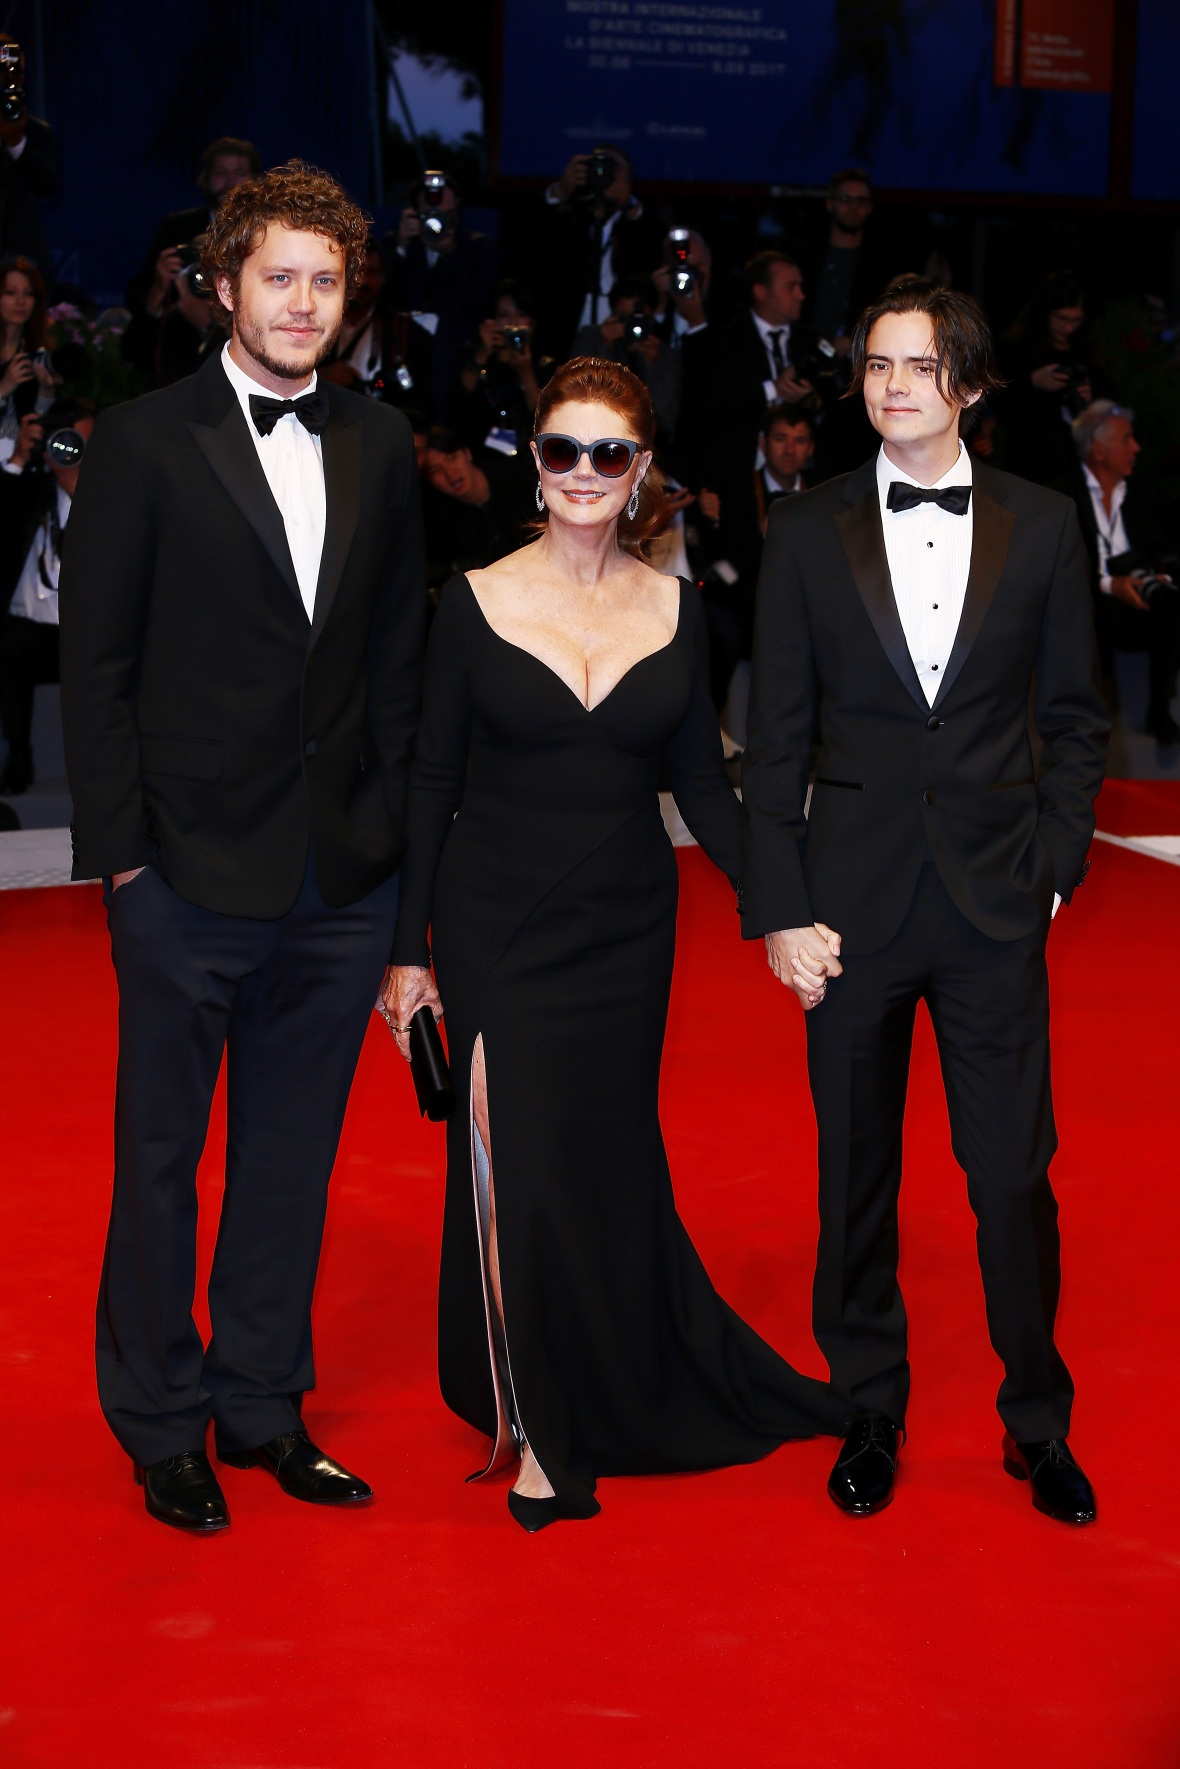 susan and her sons, jack and miles. (photo credit: getty images)